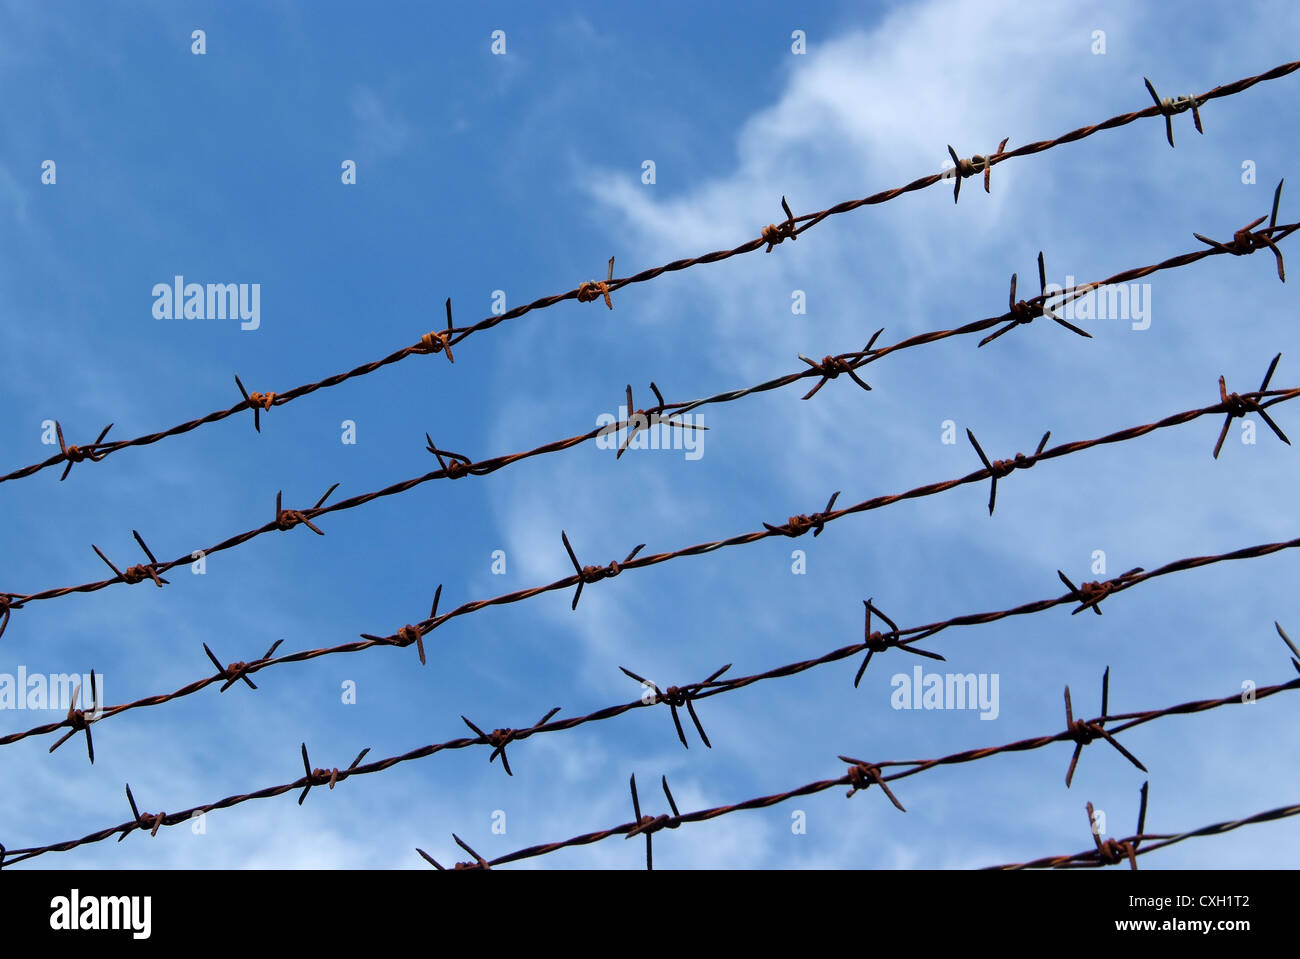 Barb wire fence and blue sky blackground - Stock Image